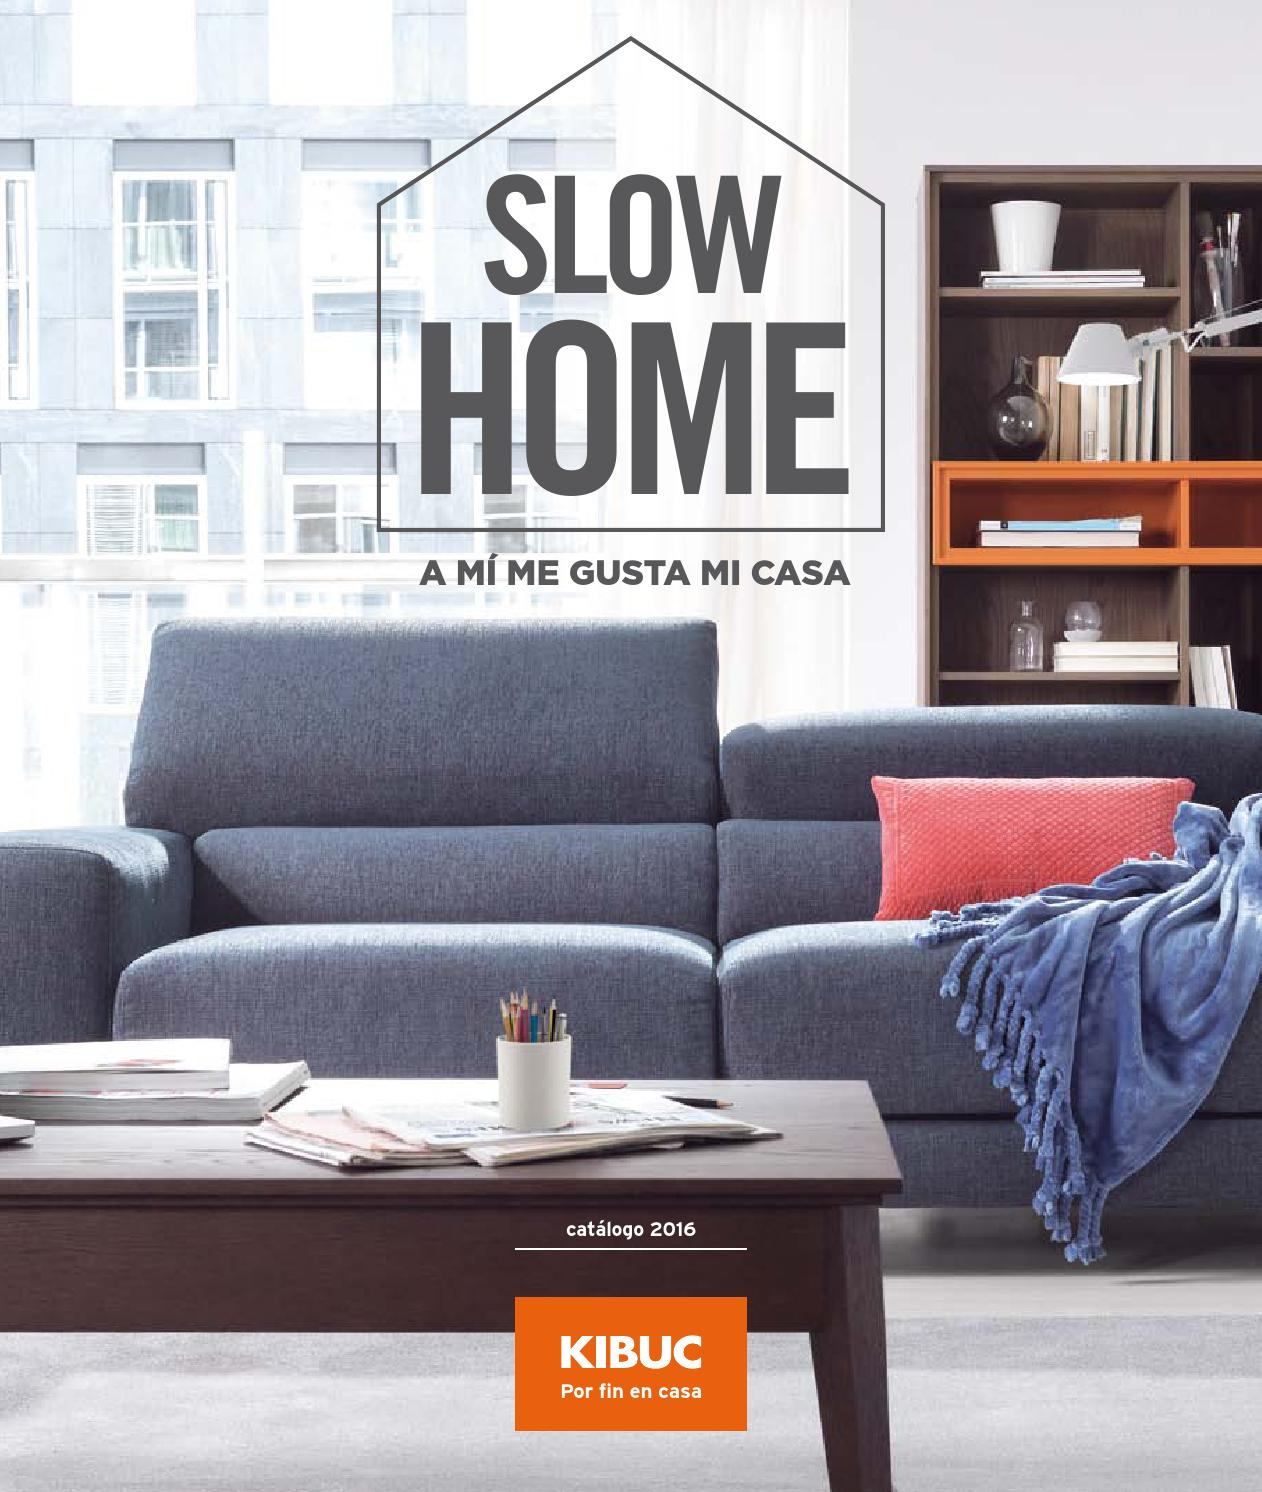 K cataleg 2015 16 cast by kibuc issuu for Muebles el poligono chiclana catalogo